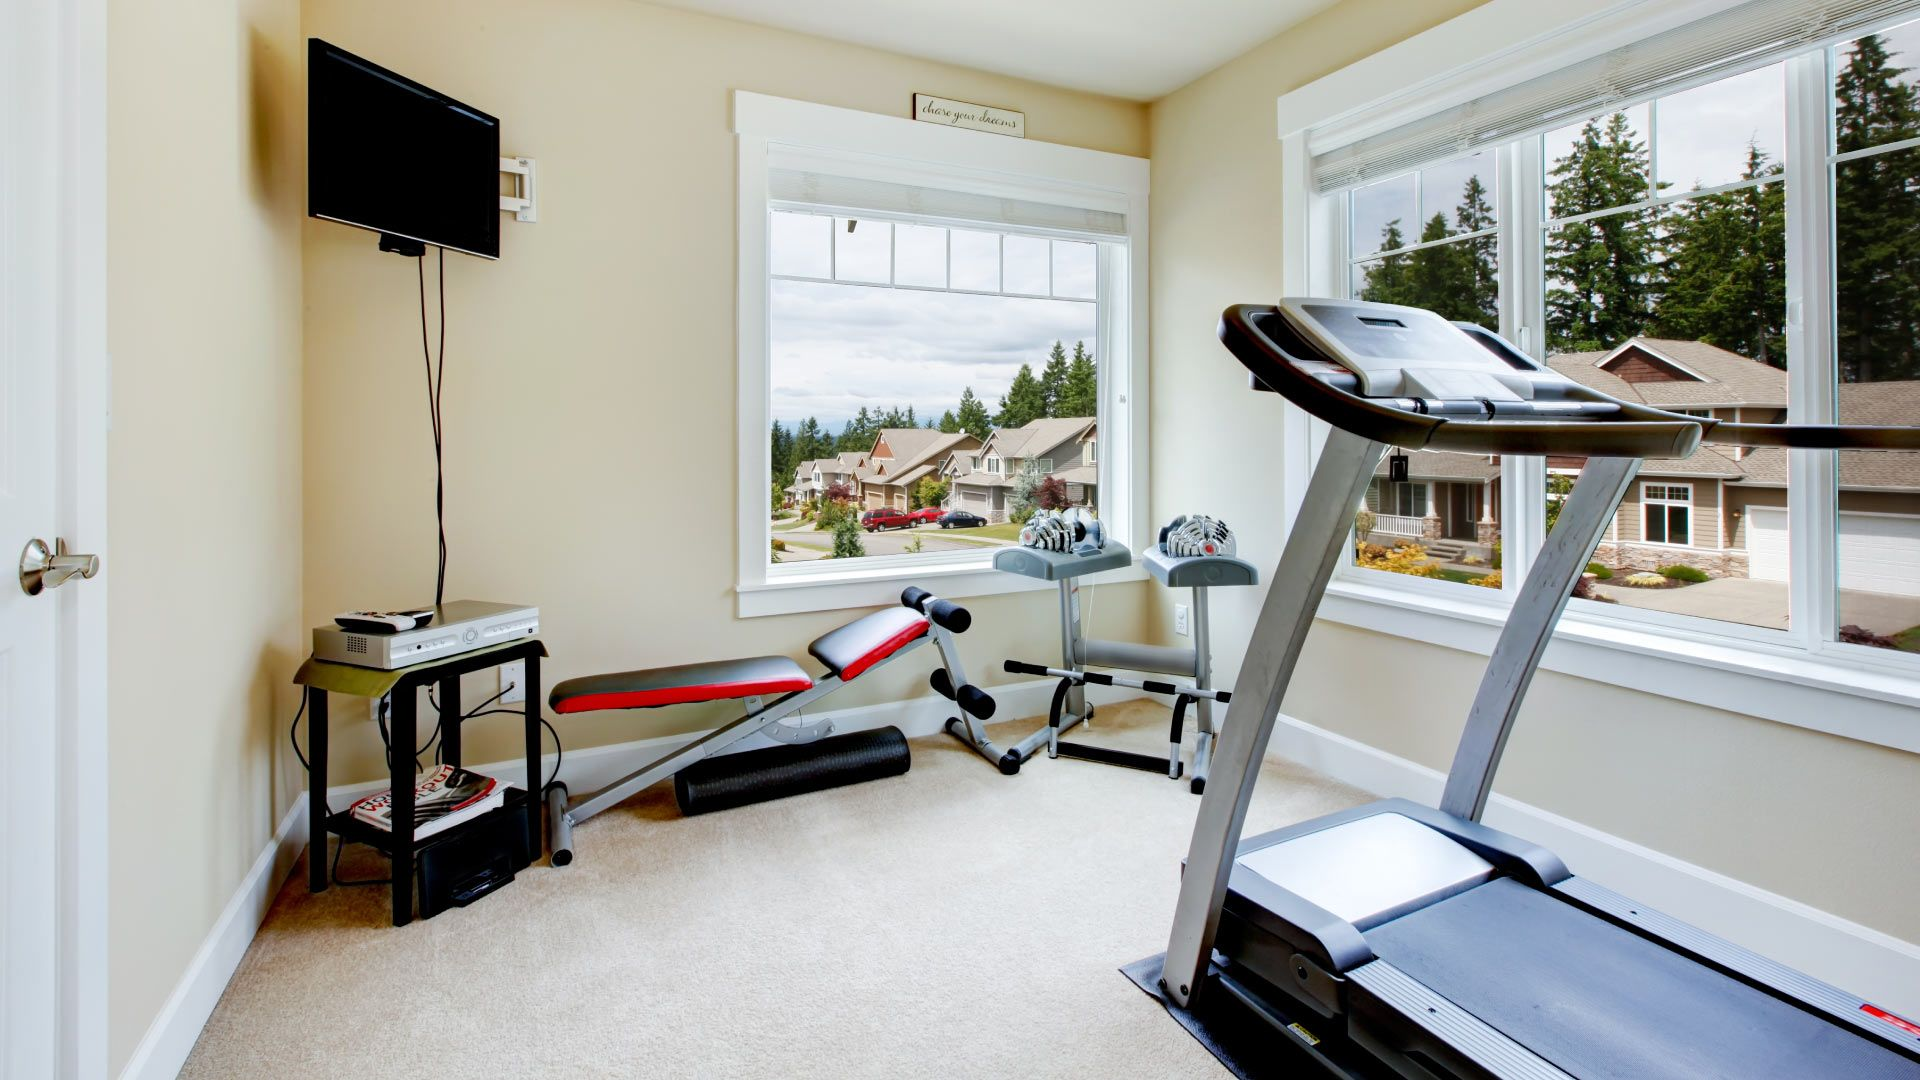 home gym designs #home gym ideas creative to workout at home | Home ...